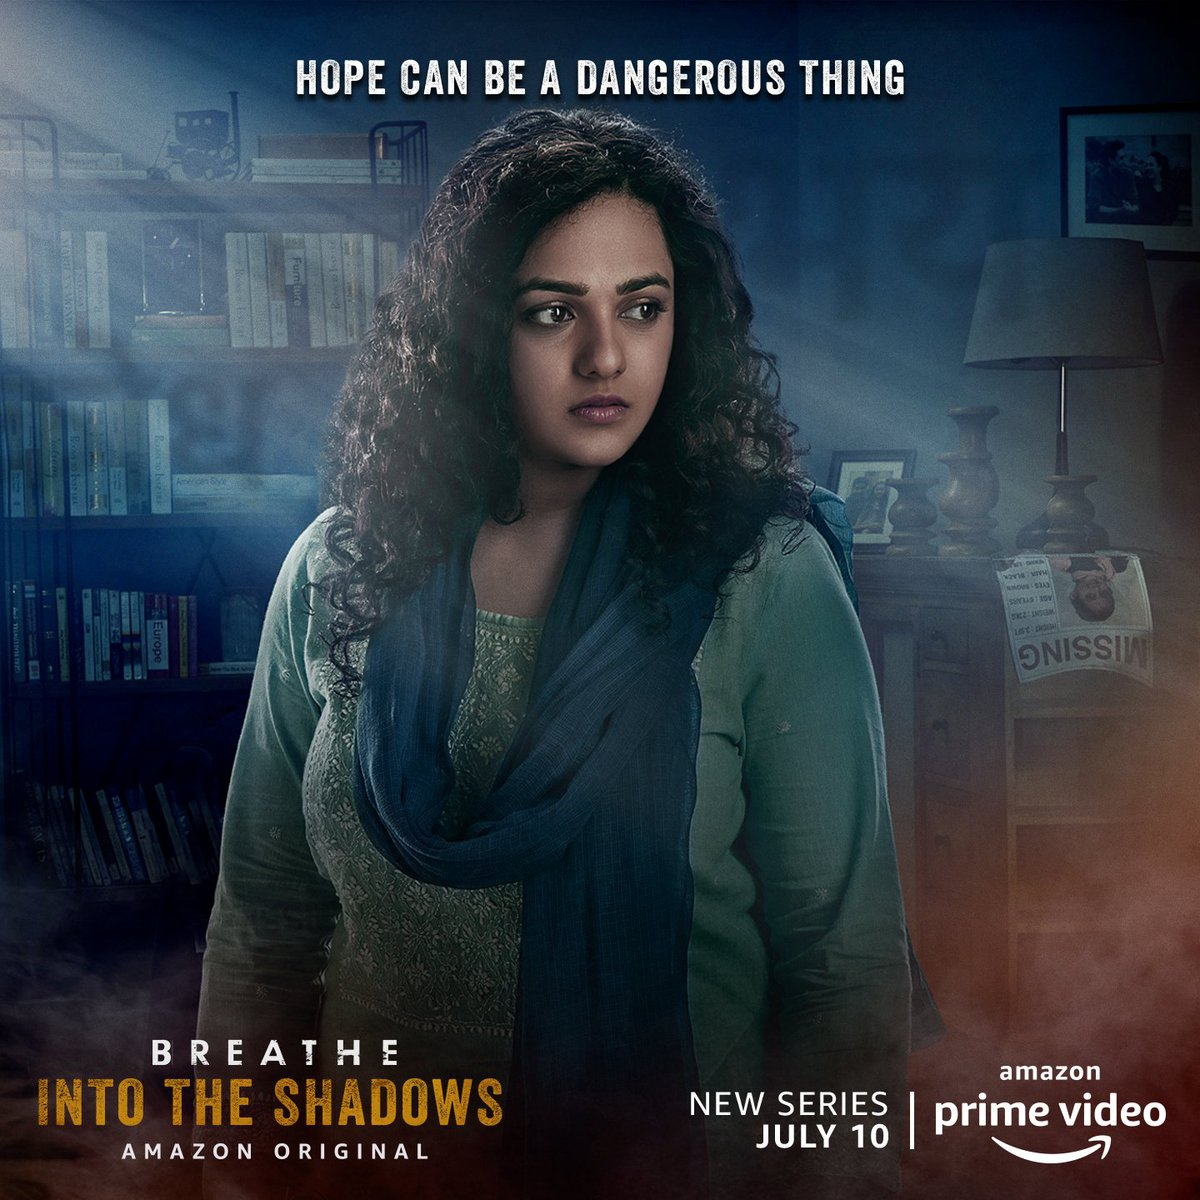 Mumma wont give up, Siya...She will find you. #BreatheIntoTheShadows Trailer Out, July 1 @PrimeVideoIN @BreatheAmazon